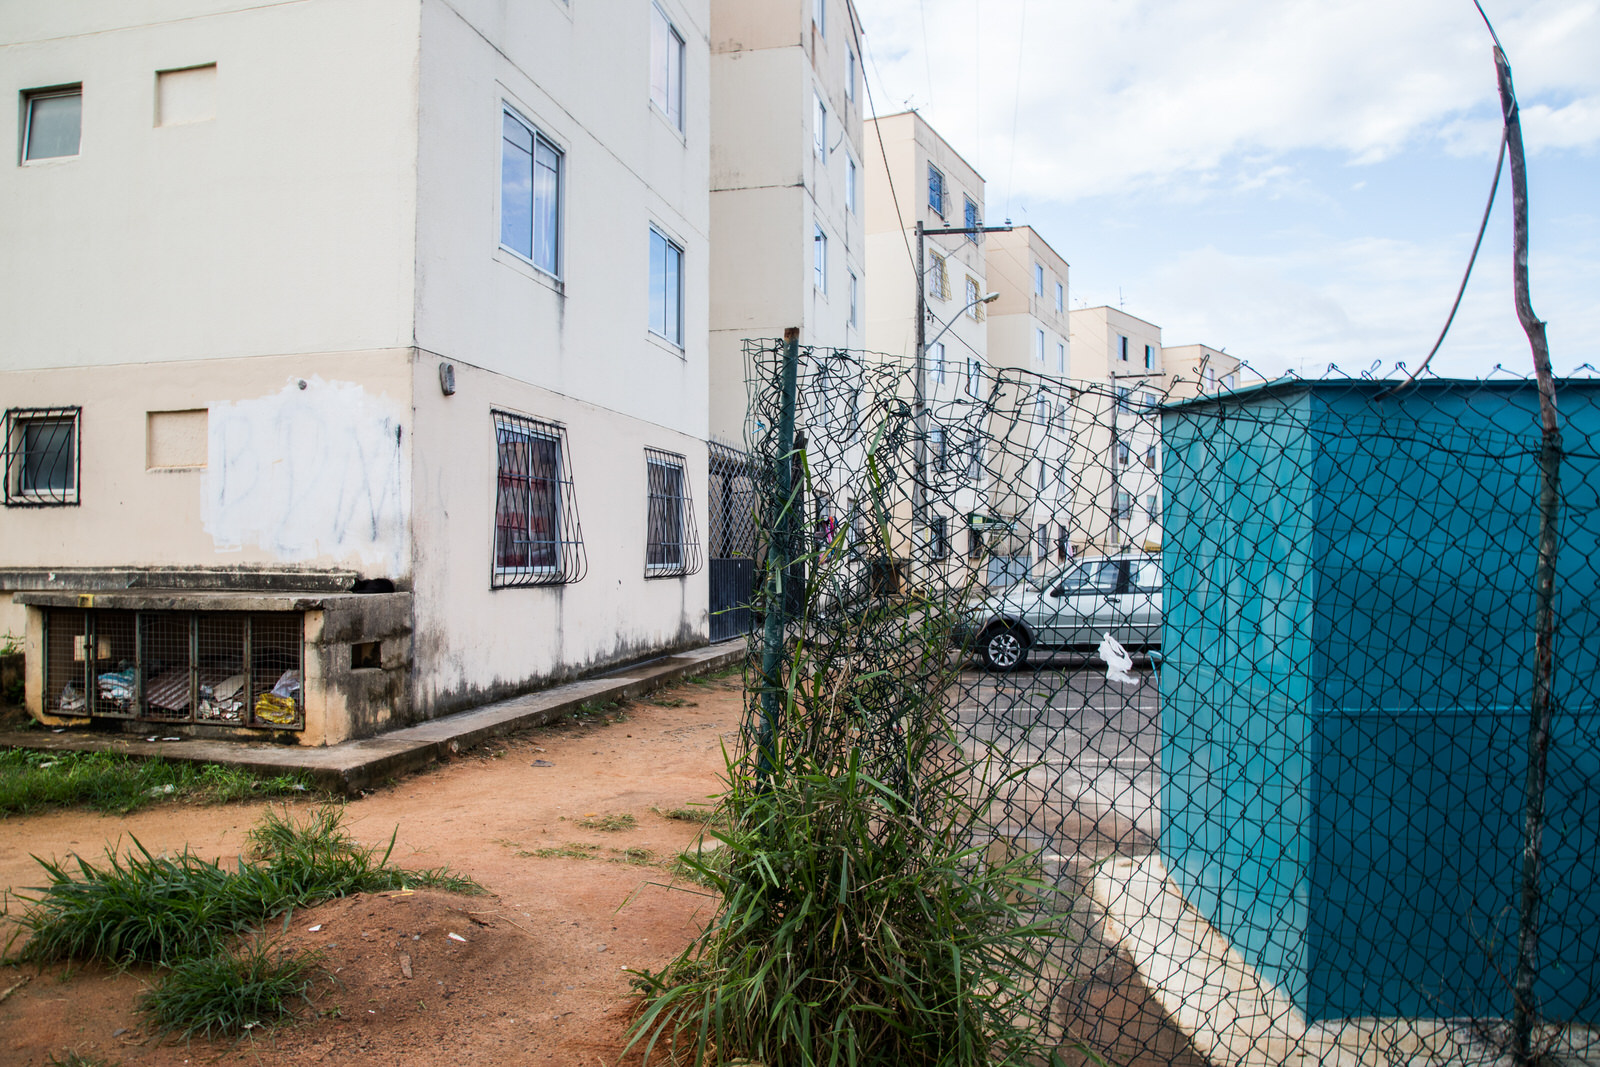 'Minha Casa, Minha Vida' is the largest social housing programme in Latin America, though locations of projects often have poor accesses to services in the city. Bosque das Bromélias in the outskirts of Salvador is an example.